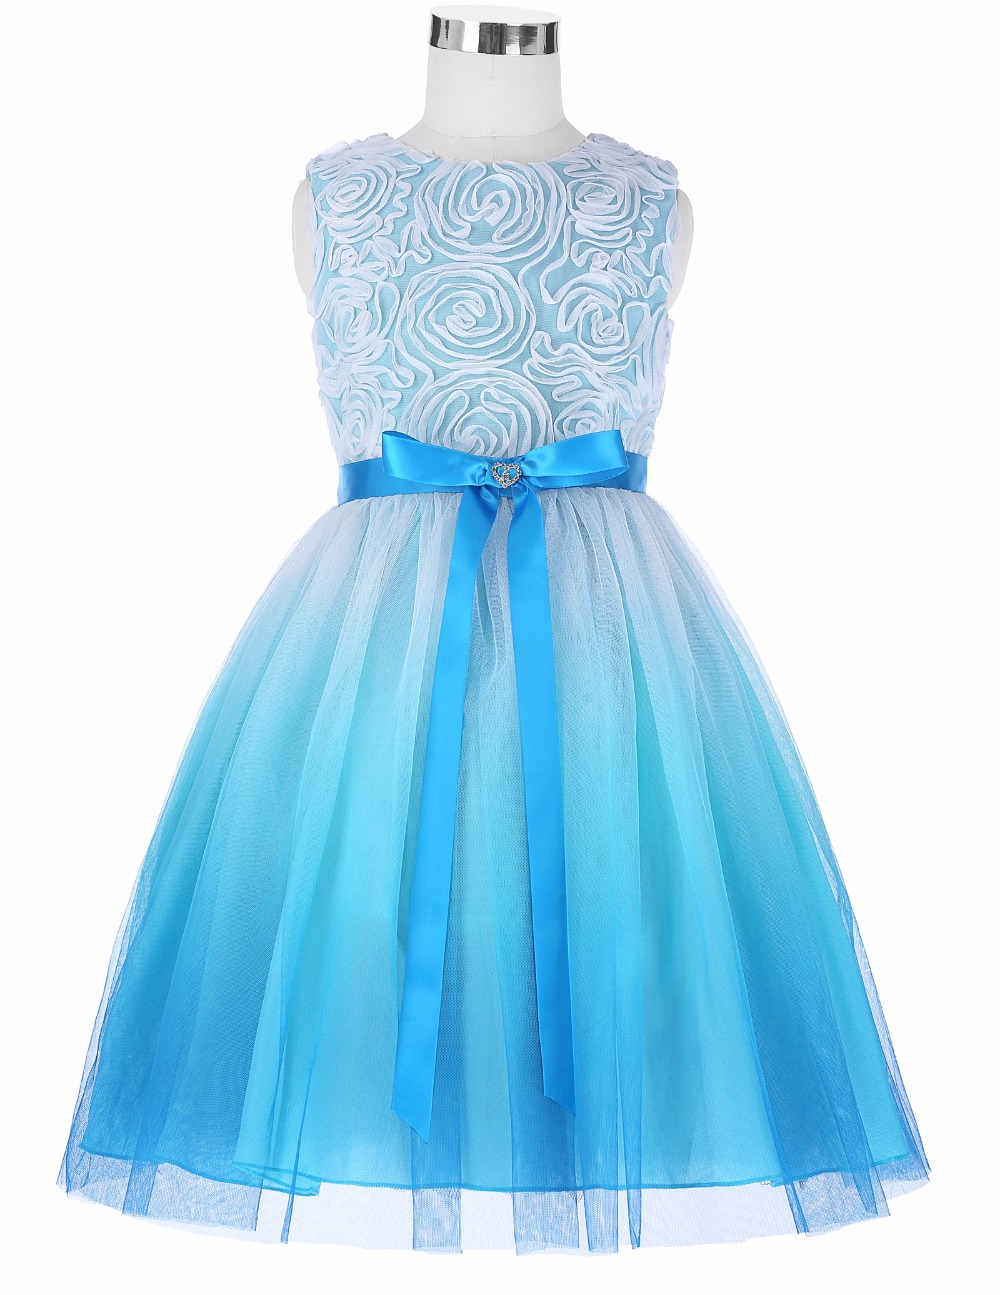 Grace Karin 2017 Flower Girl Dresses Luxury Tulle Flower Party Dresses For Wedding Party First Communion Dresses With Bow Ribbon 12